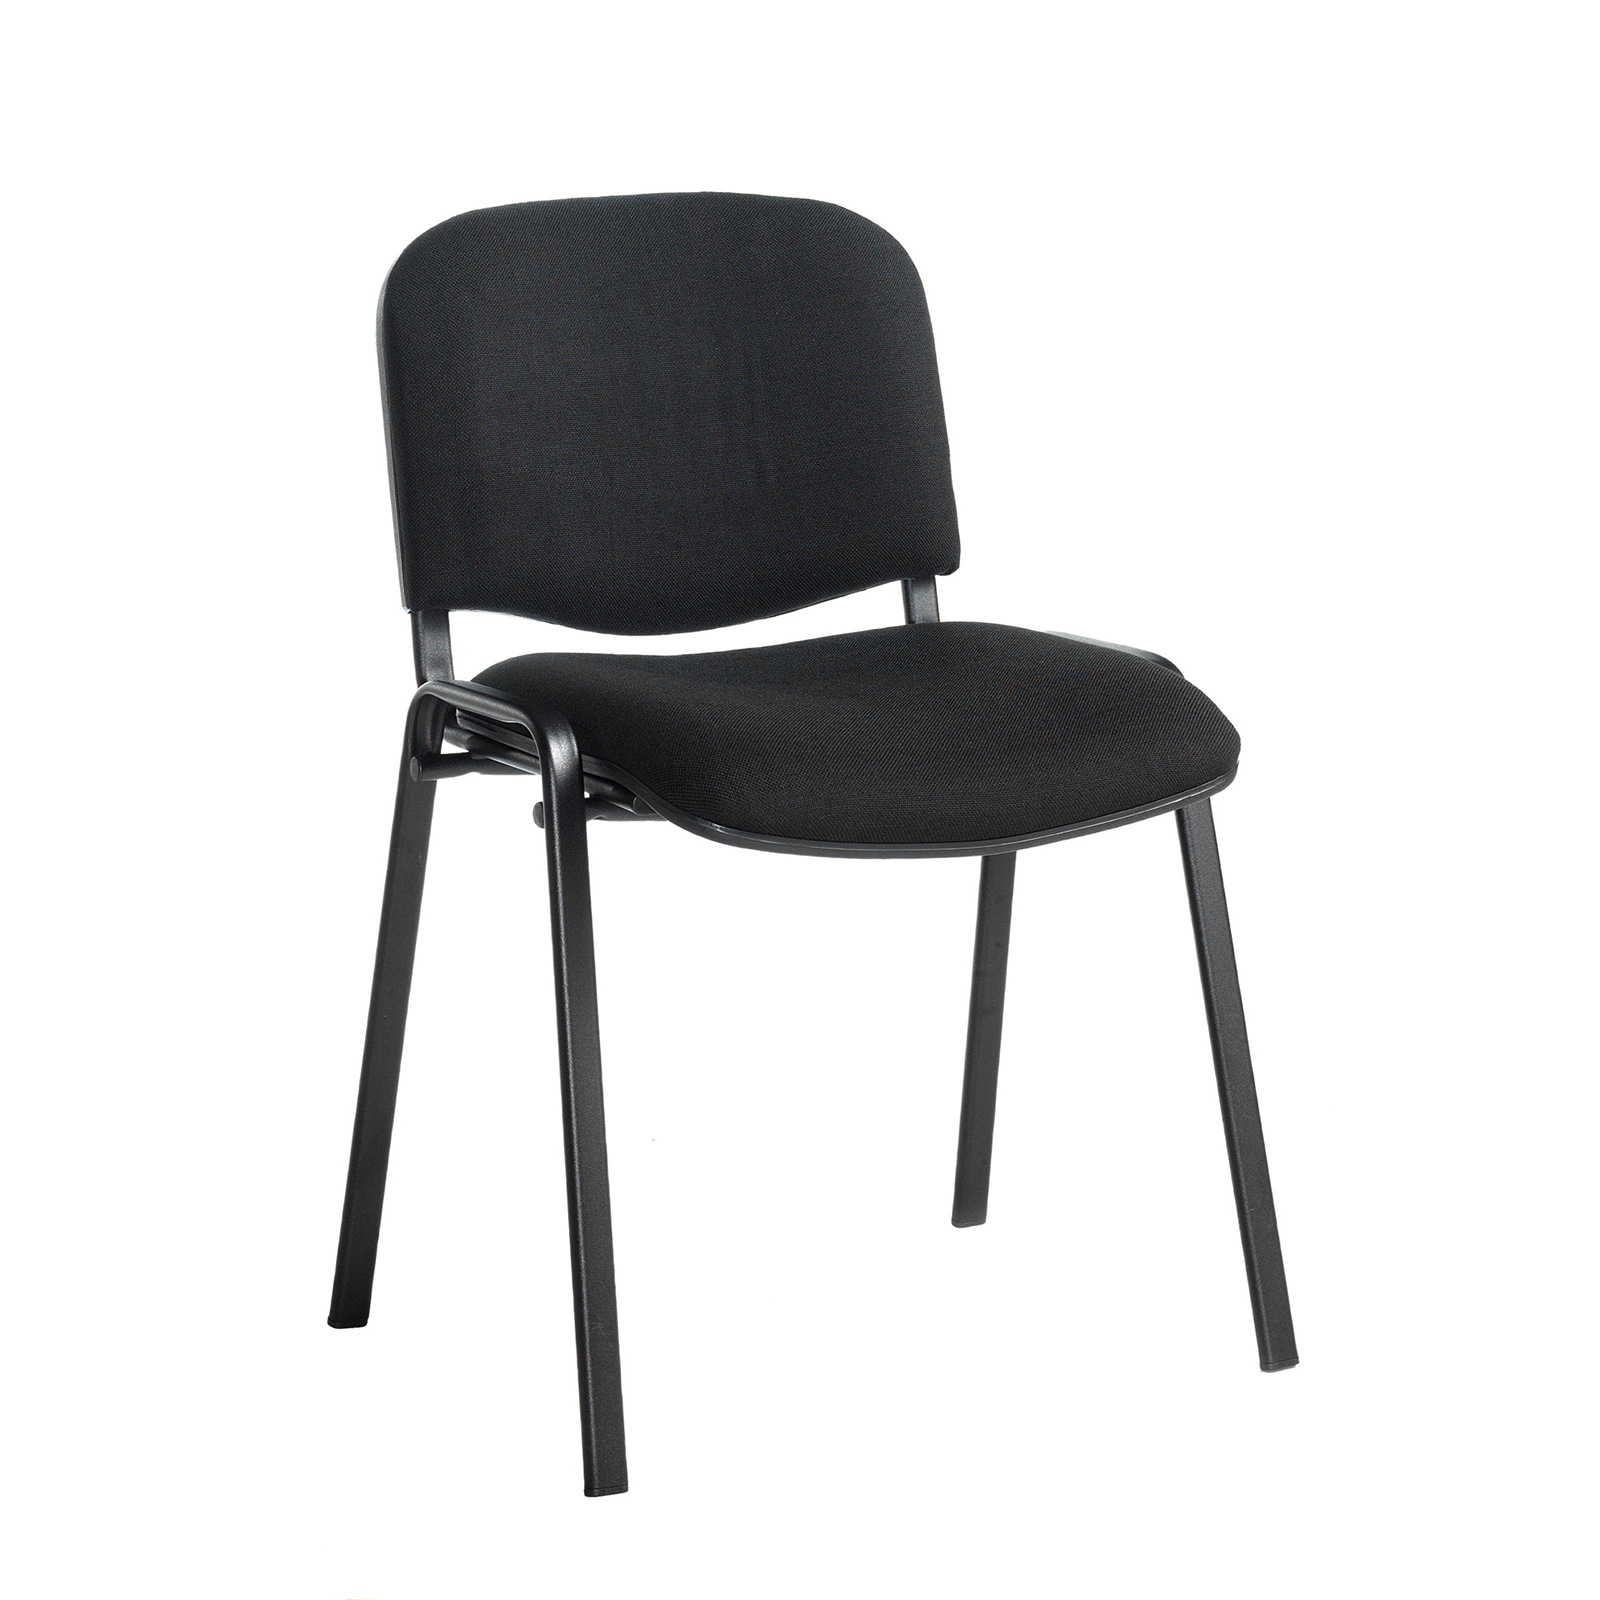 Boardroom / Meeting Taurus meeting room stackable chair with black frame and no arms - black